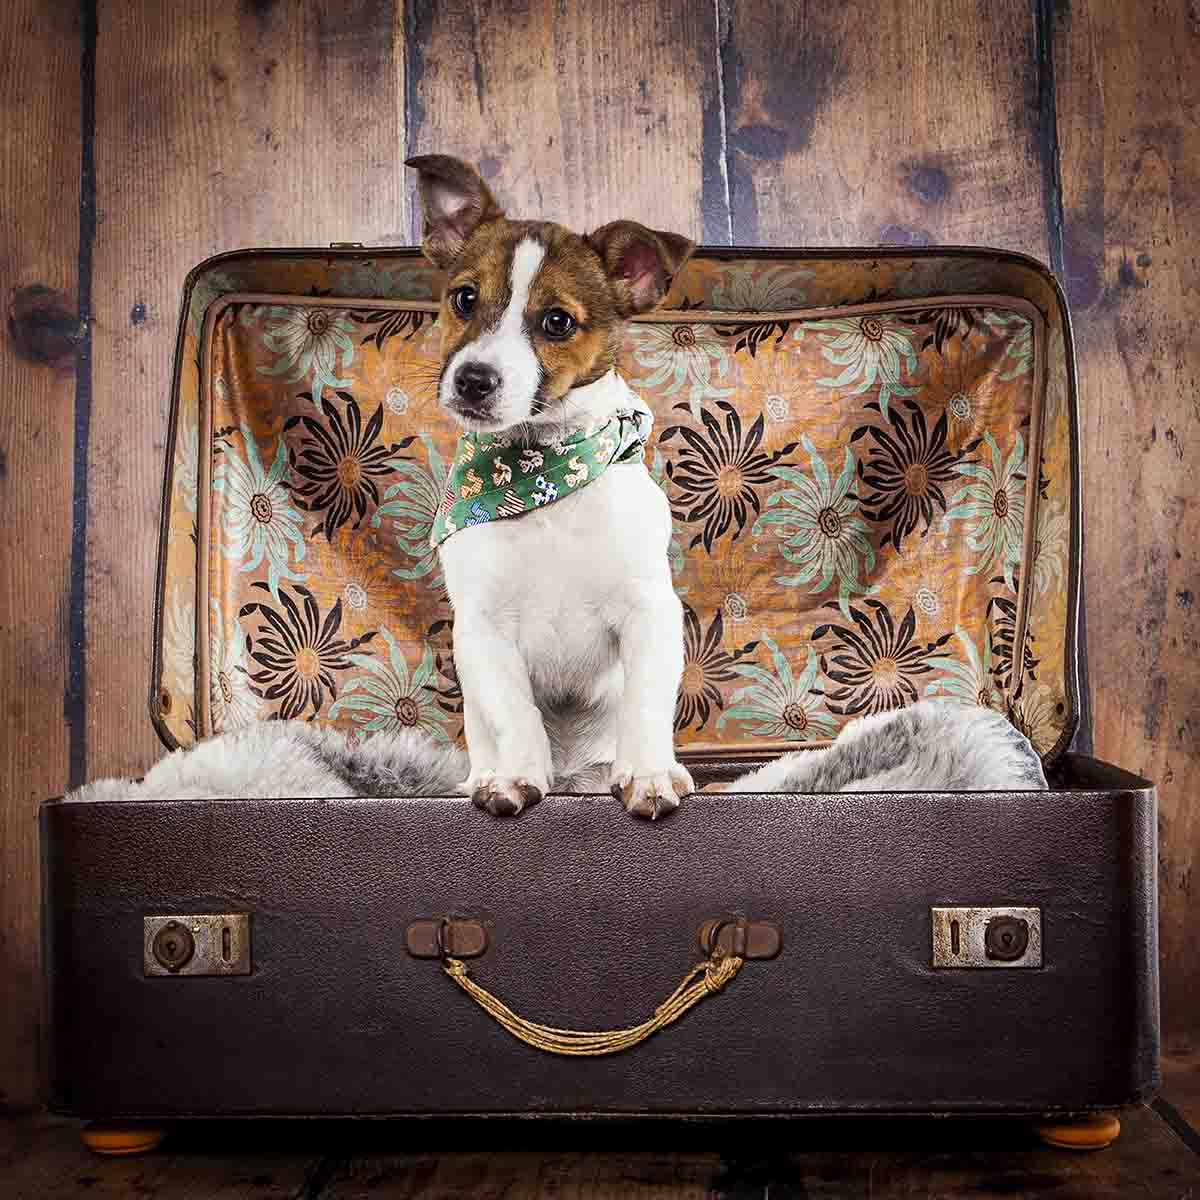 dog in suitcase wearing bandana studio shoot jack russell small